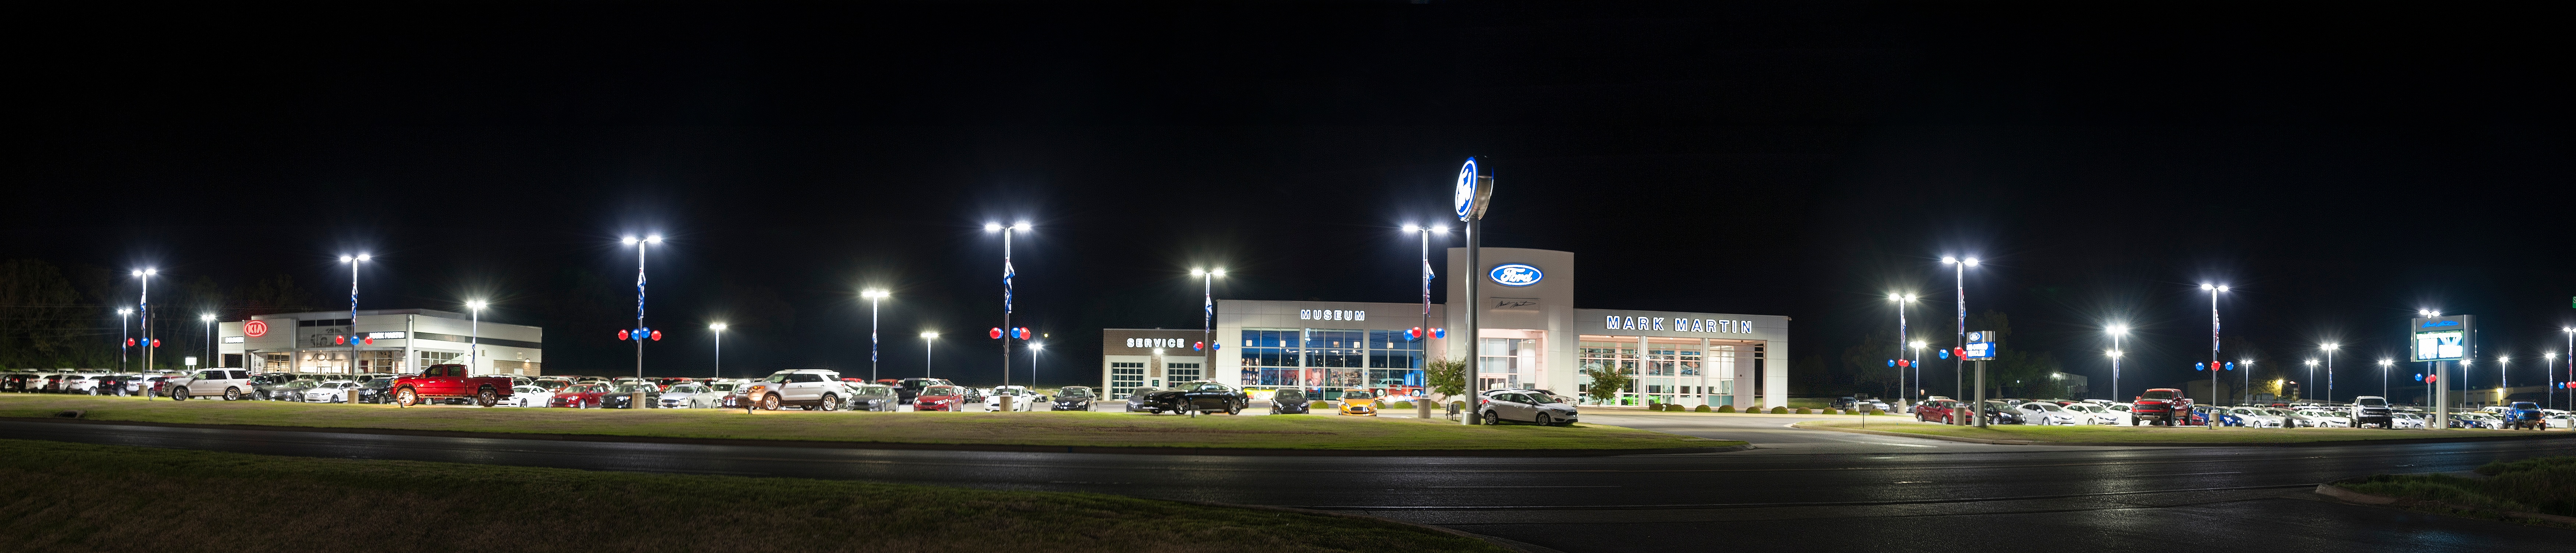 & 6 Things About LED Parking Lot Lighting That You Should Know